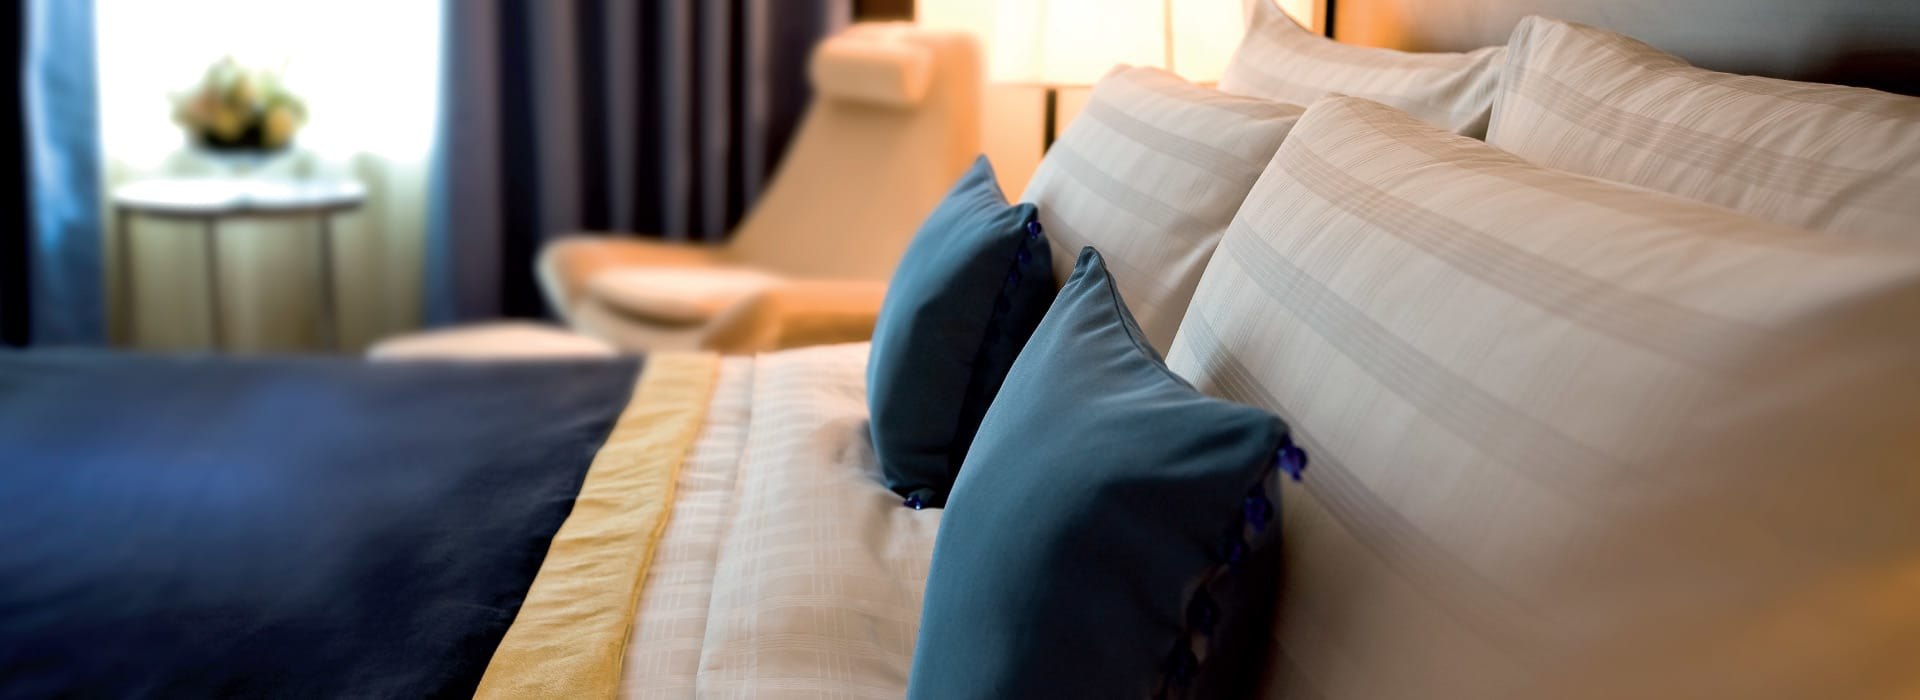 Pillows on a bed at one of the hotels in Dubai Deira